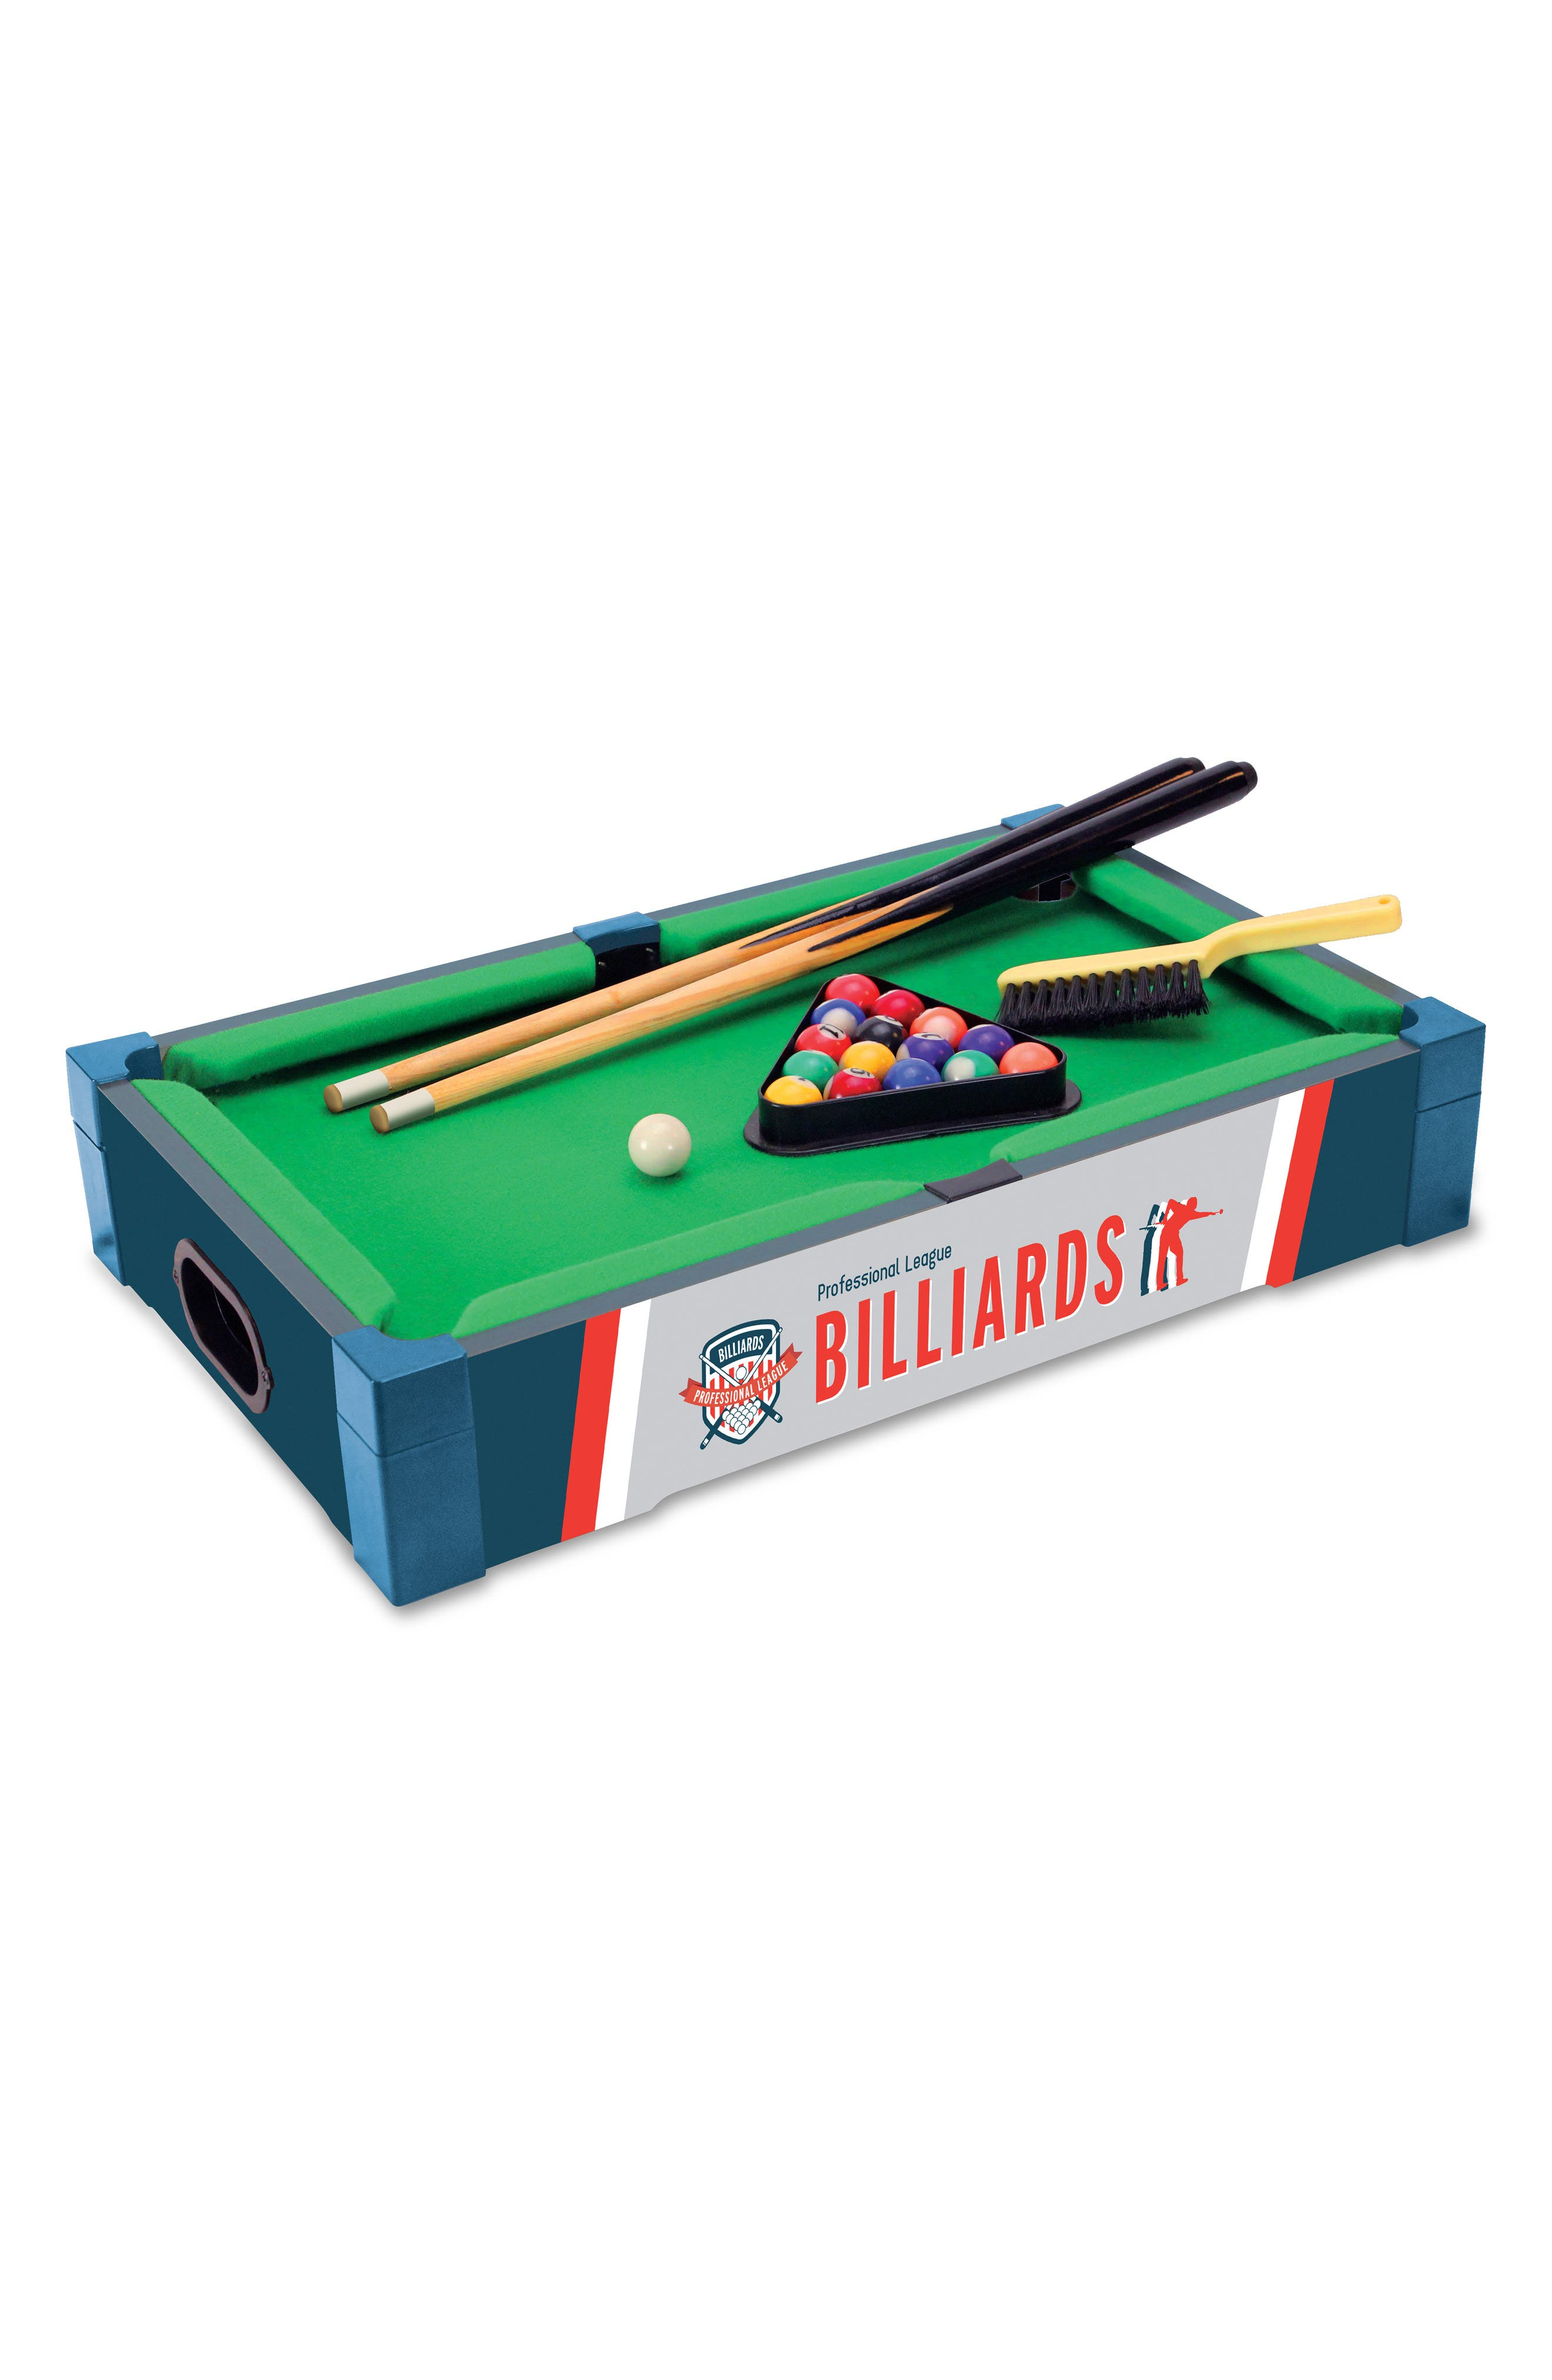 Boys Westminster Toys Championship Series Pool Table Game